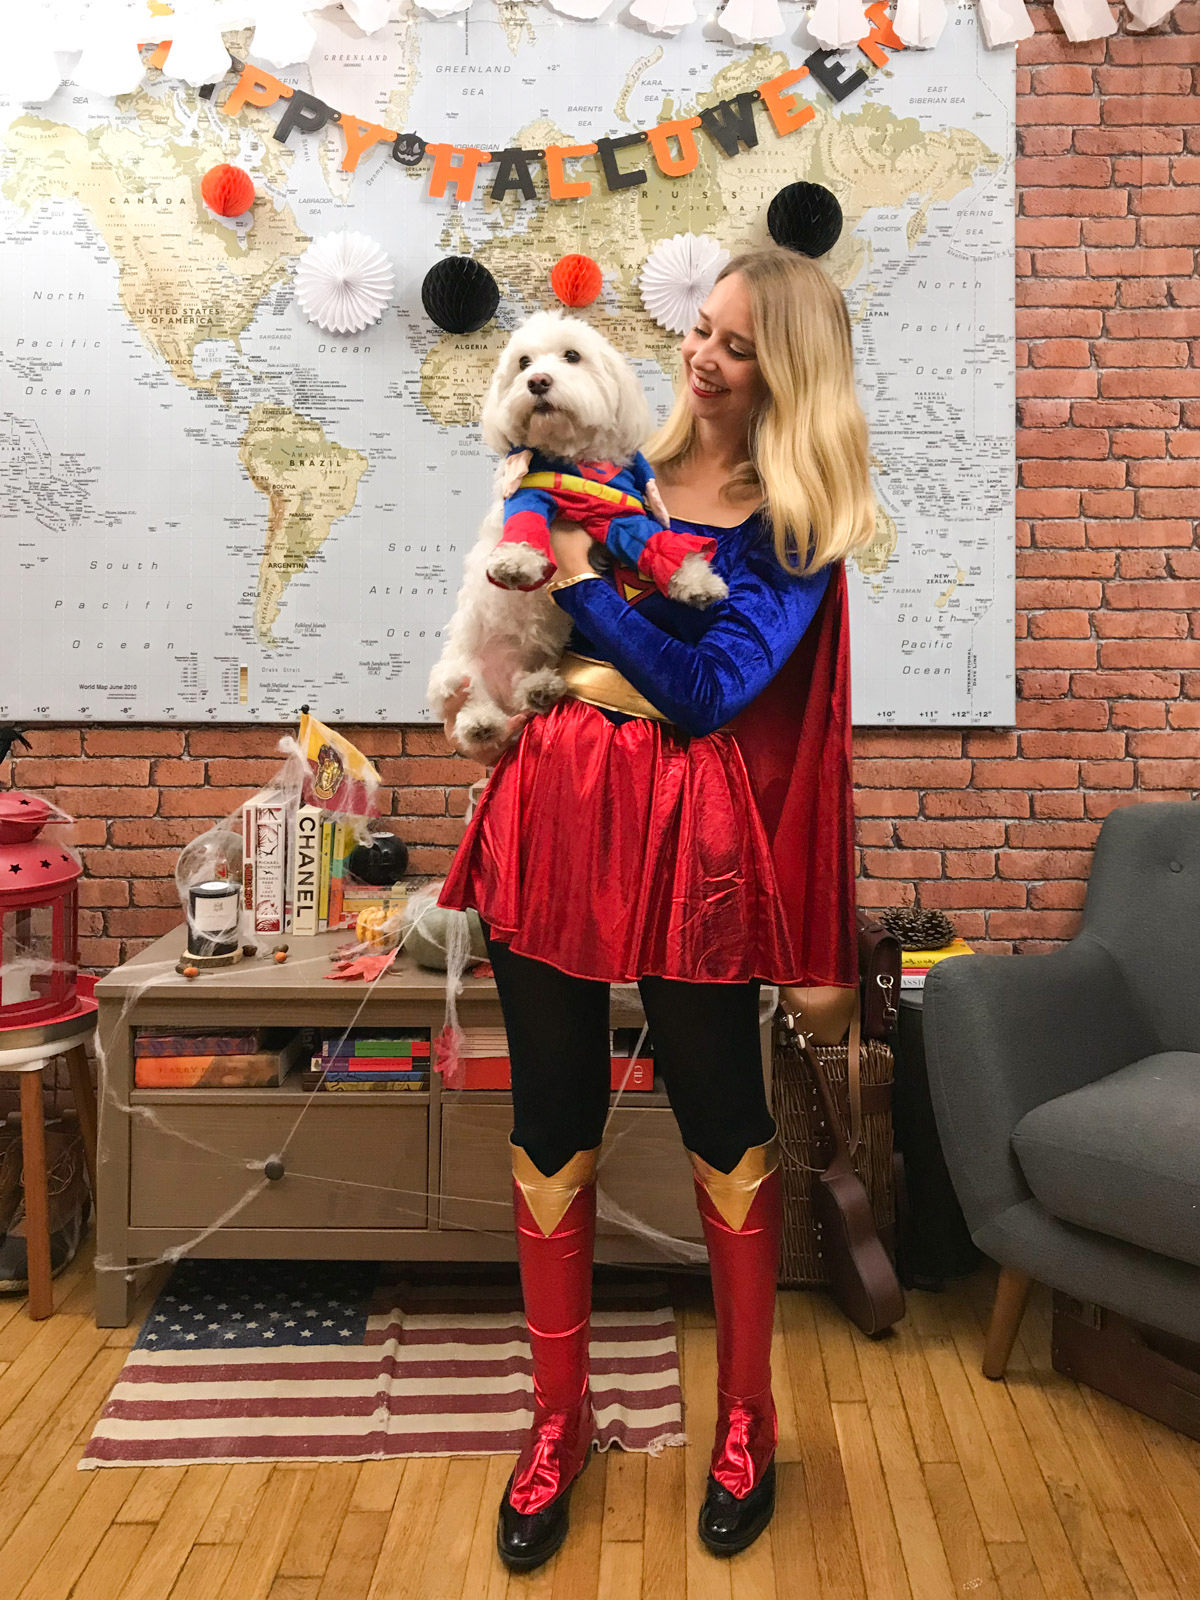 Blog-Mode-And-The-City-Lifestyle-Halloween-2017-15